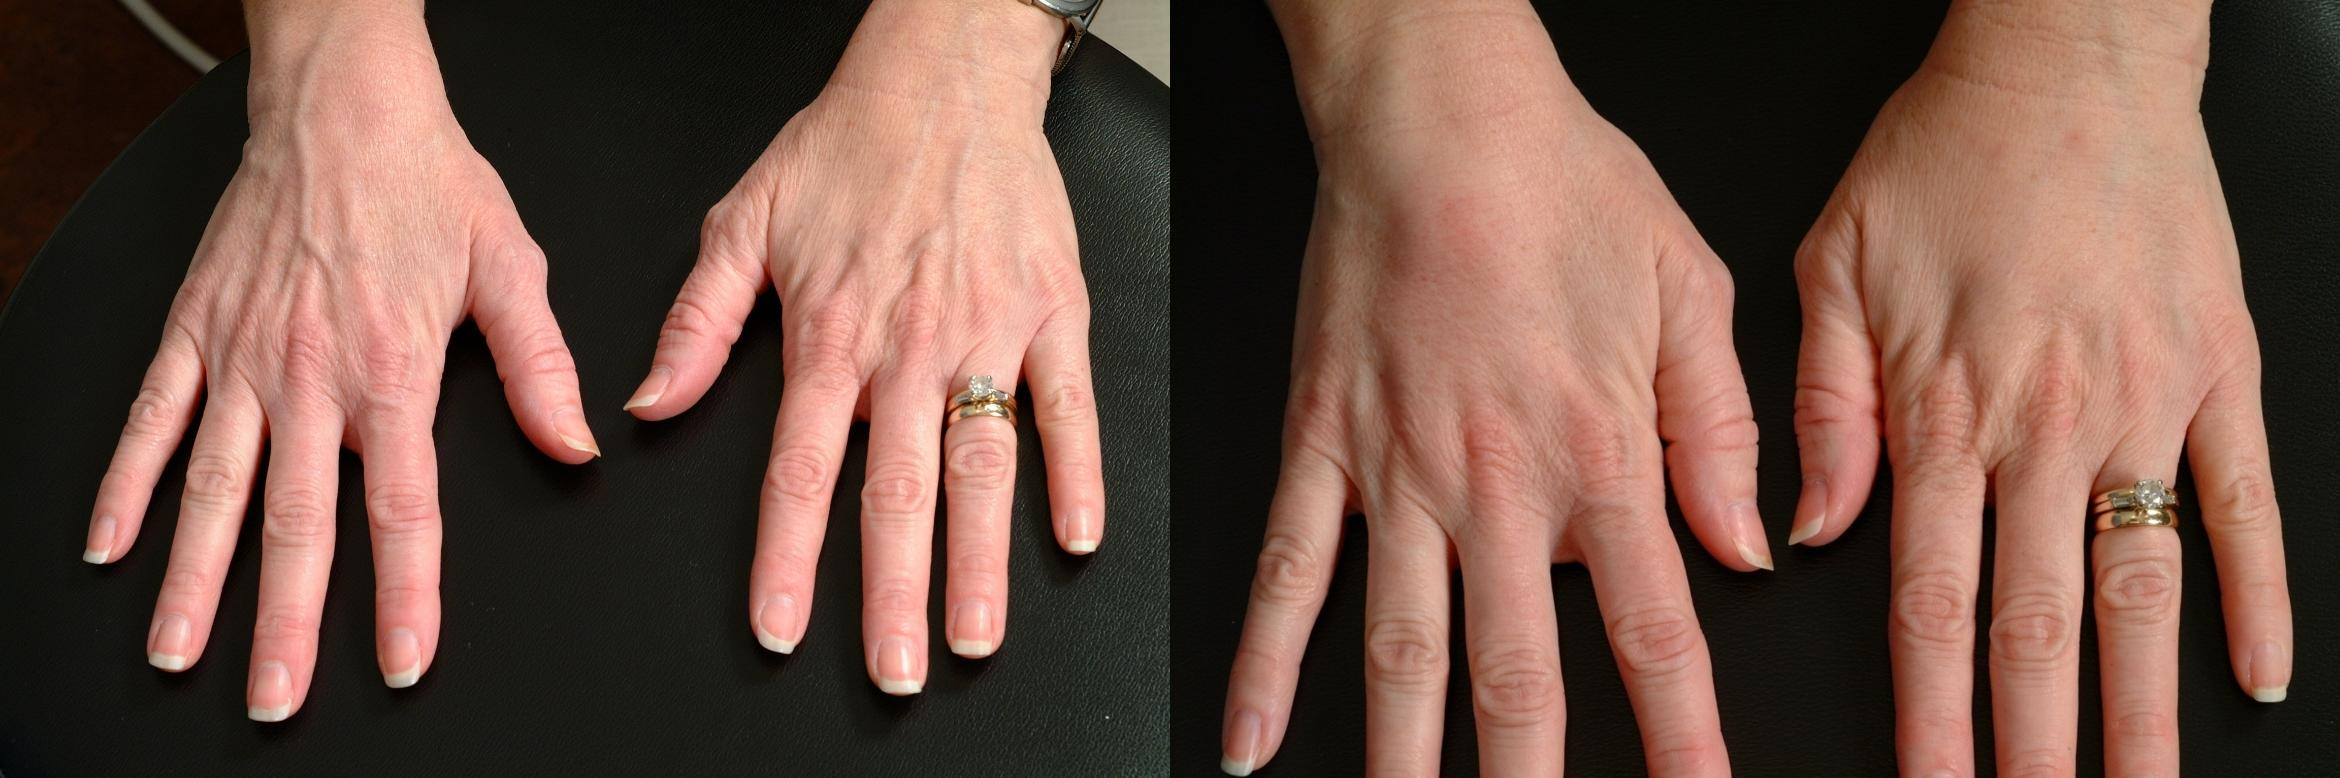 Hand Rejuvenation Case 631 Before & After Back | Louisville & Lexington, KY | CaloAesthetics® Plastic Surgery Center